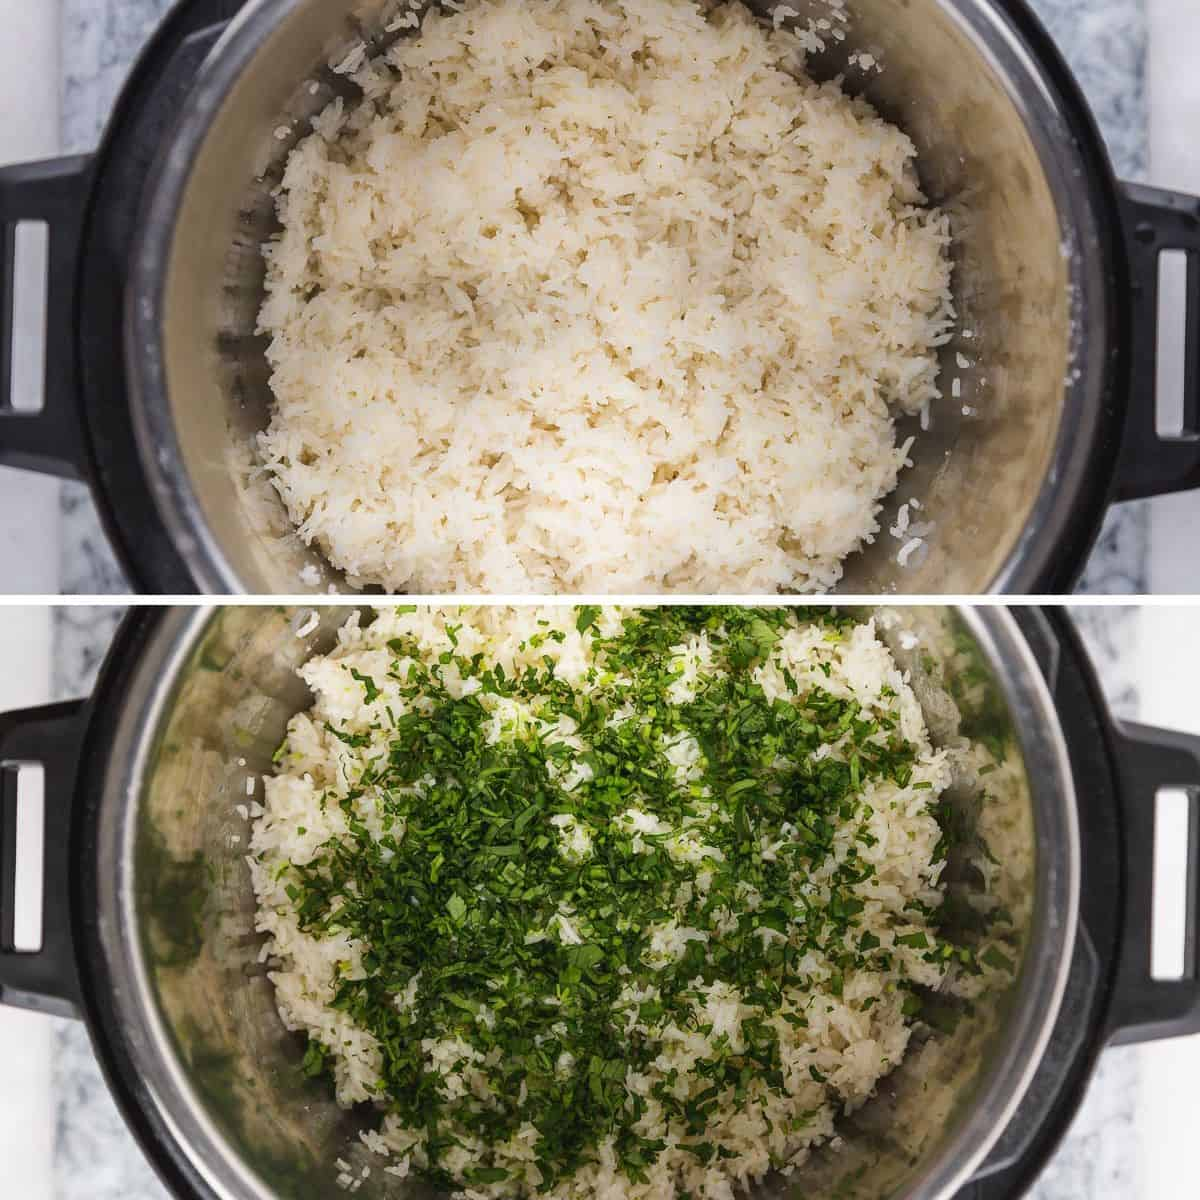 Steps showing how to make Cilantro Lime Rice in Instant Pot